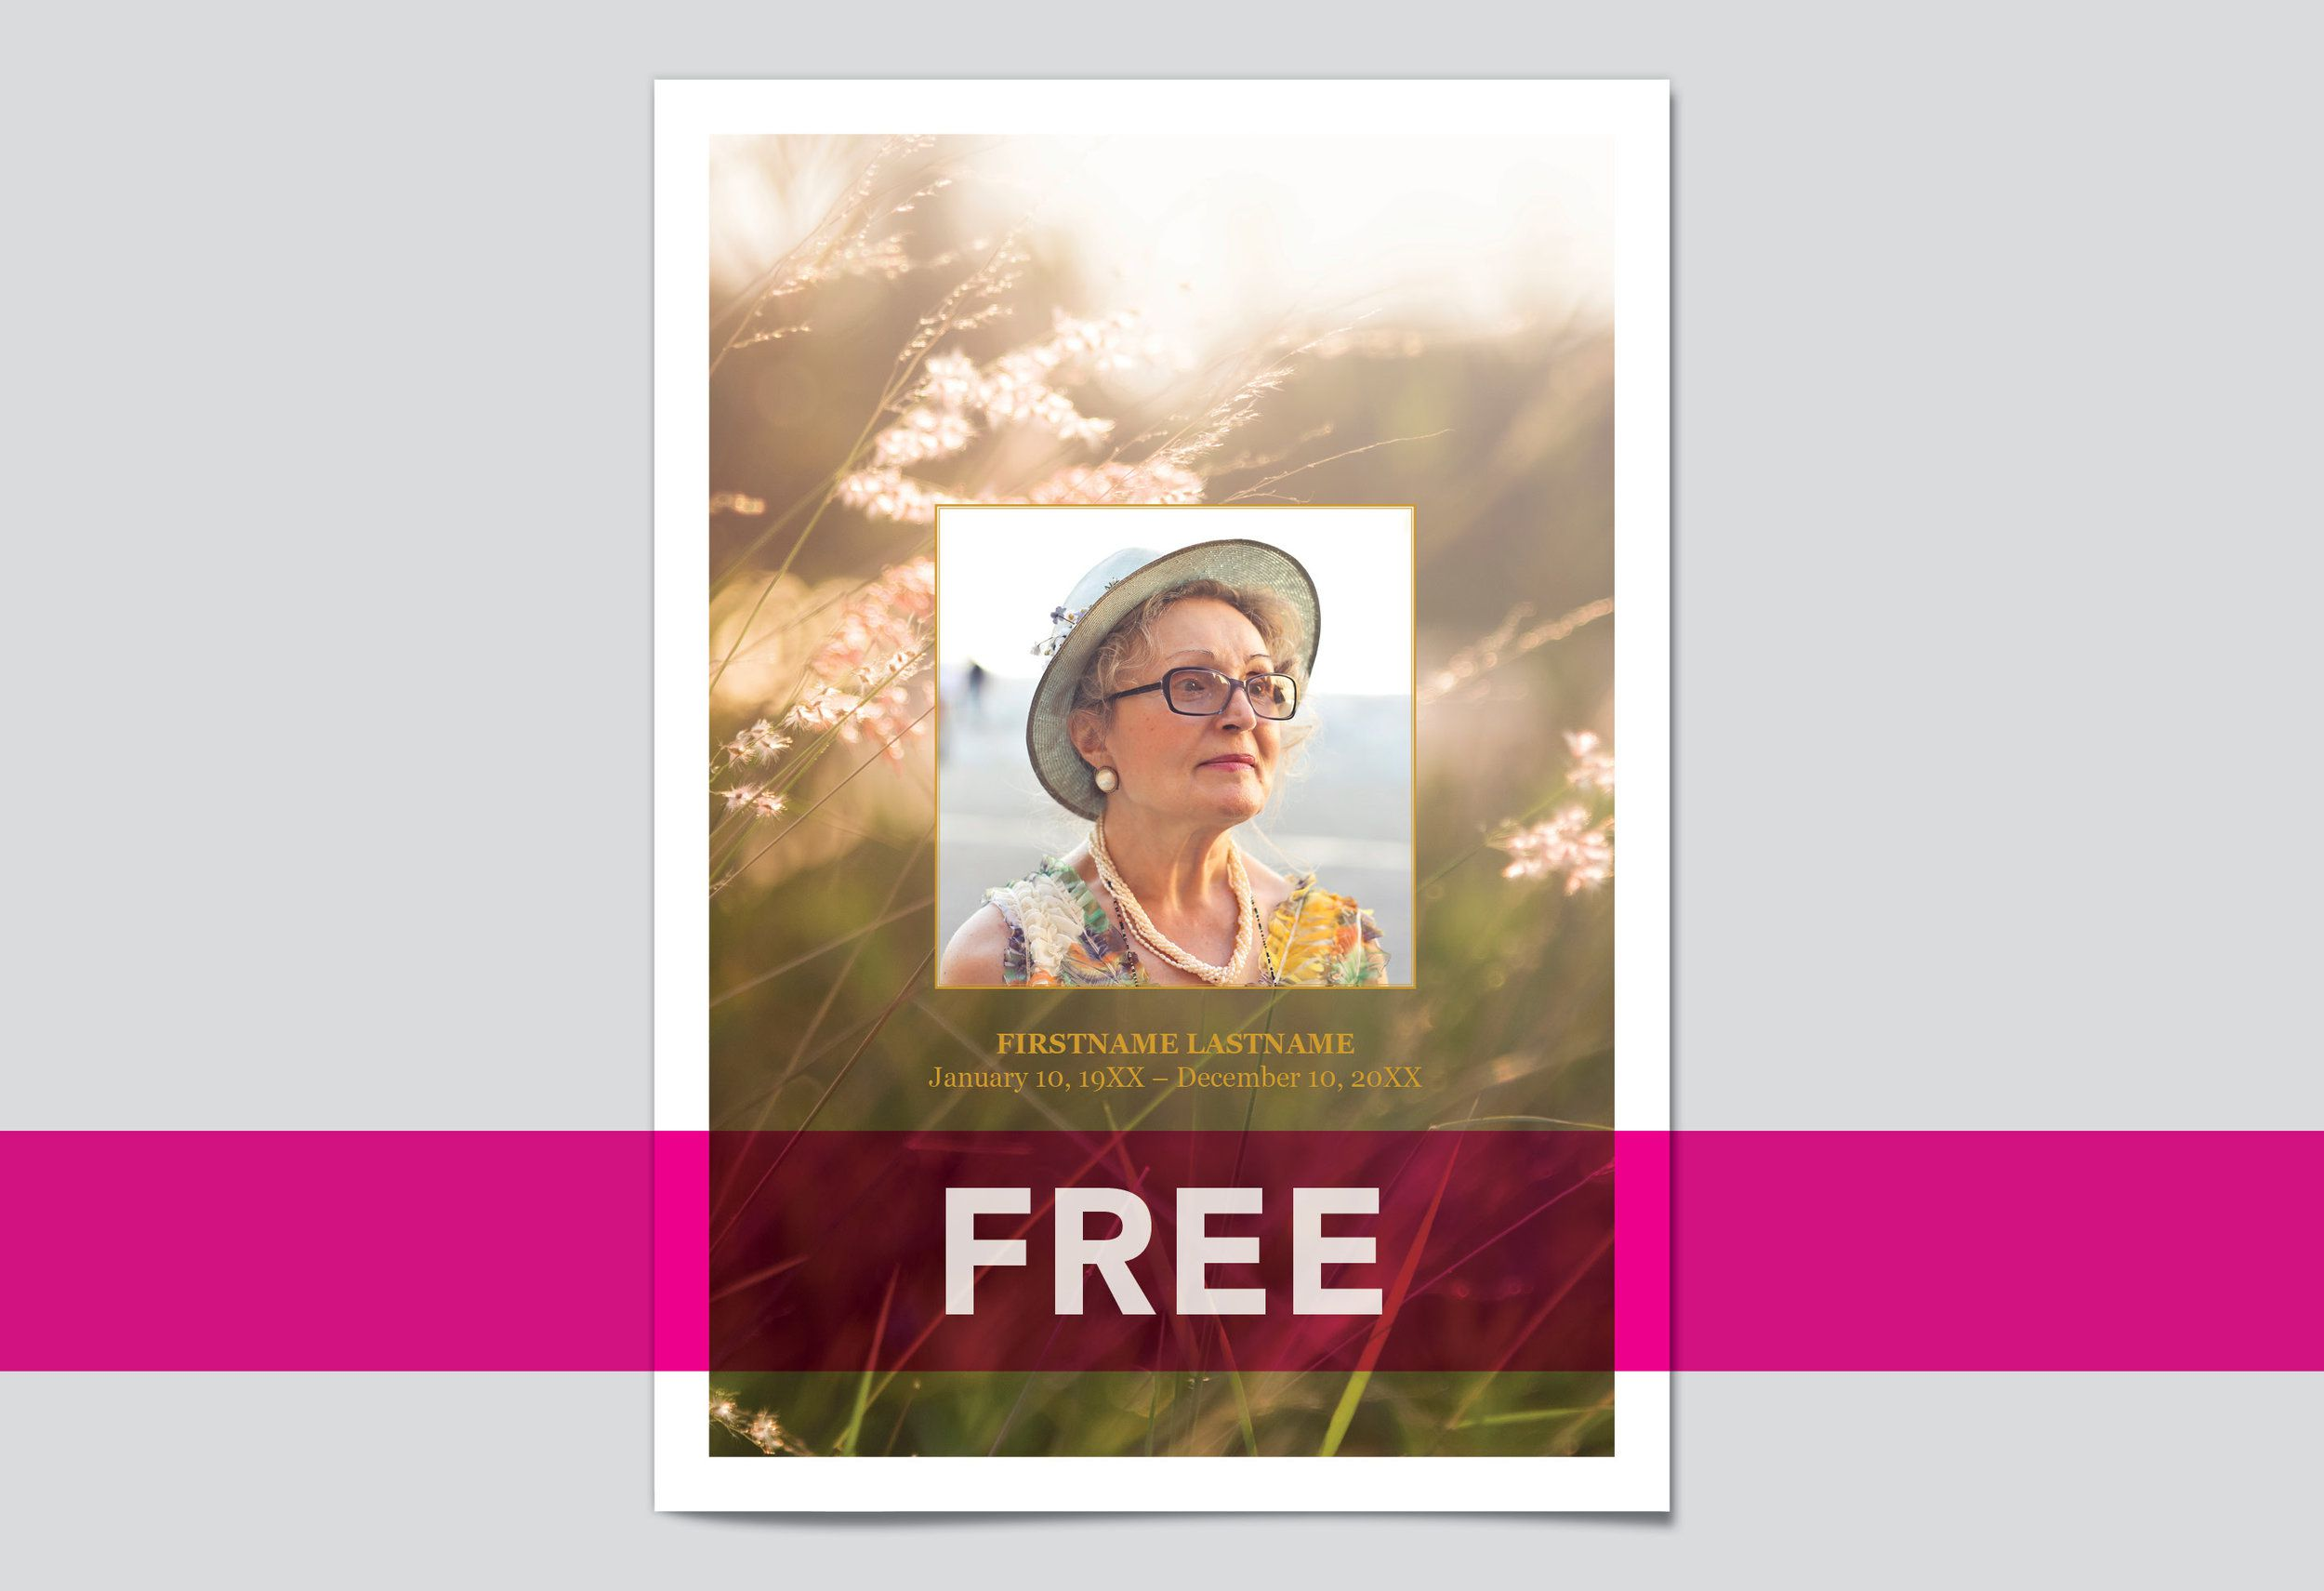 009 Impressive Free Editable Celebration Of Life Program Template Idea Full